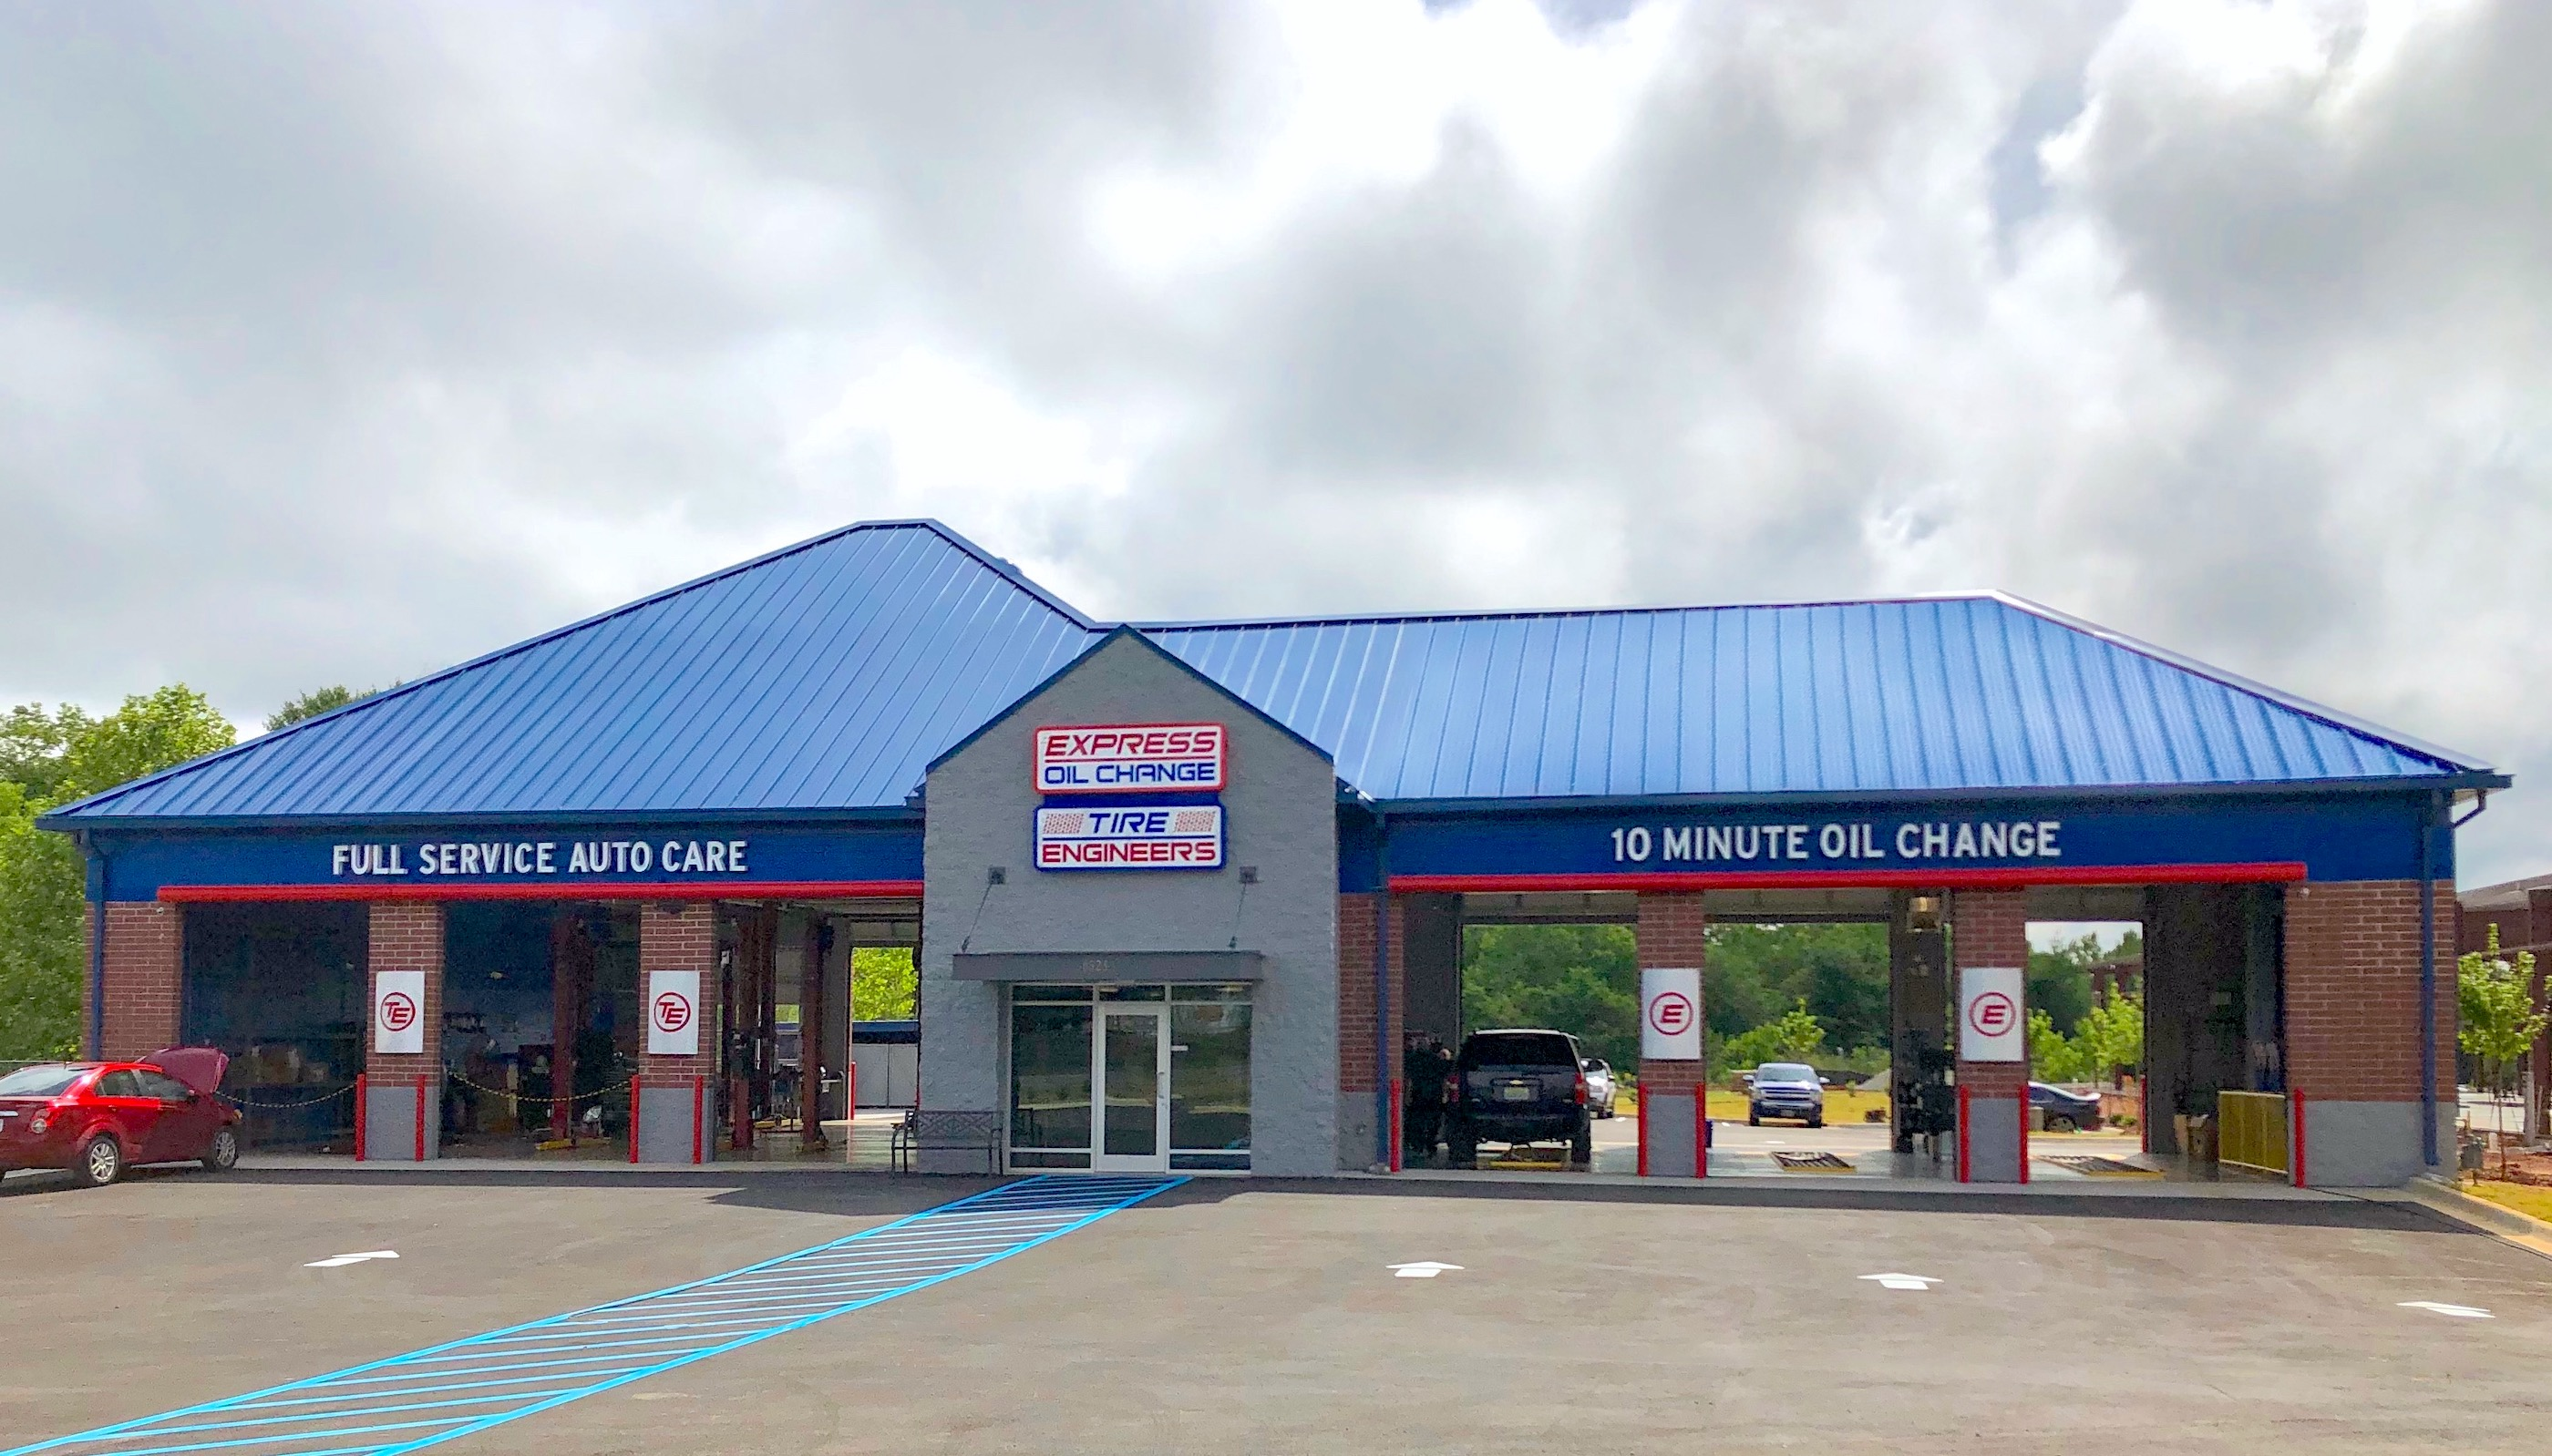 Express Oil Change & Tire Engineers Owens Cross Roads, AL - Hampton Cove store